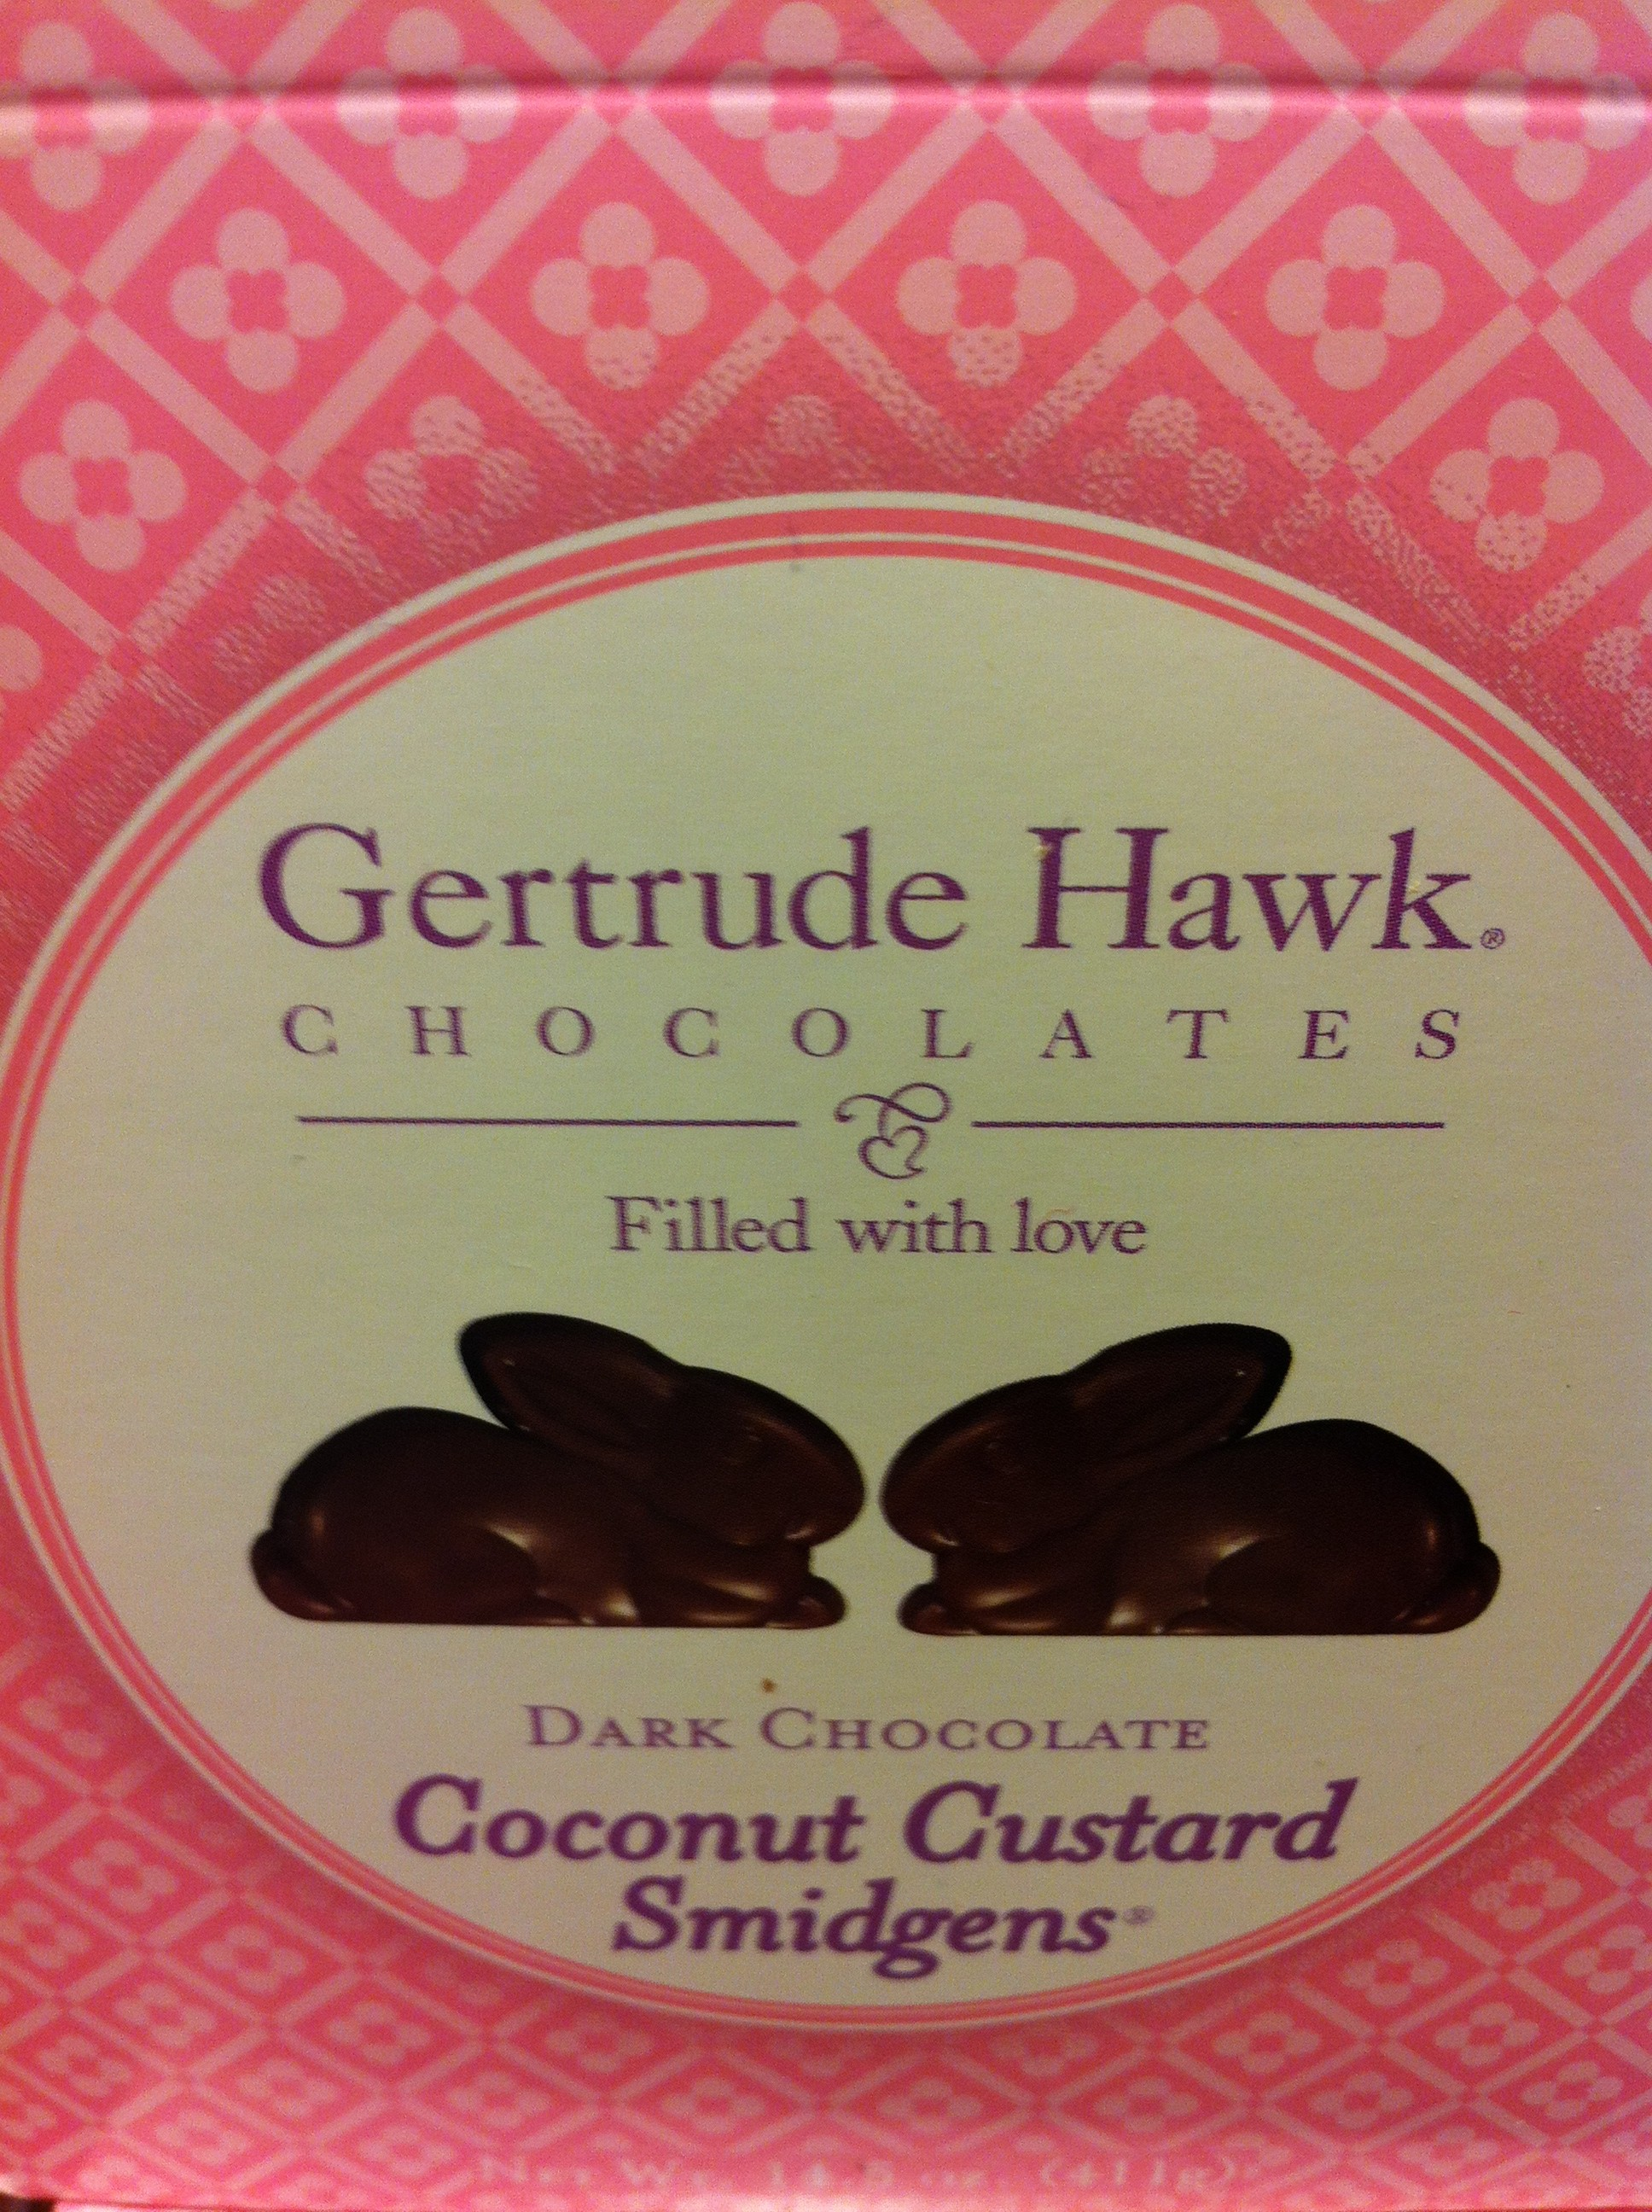 Gourmet Easter Candy Deals at Gertrude Hawk! | The Park City ...